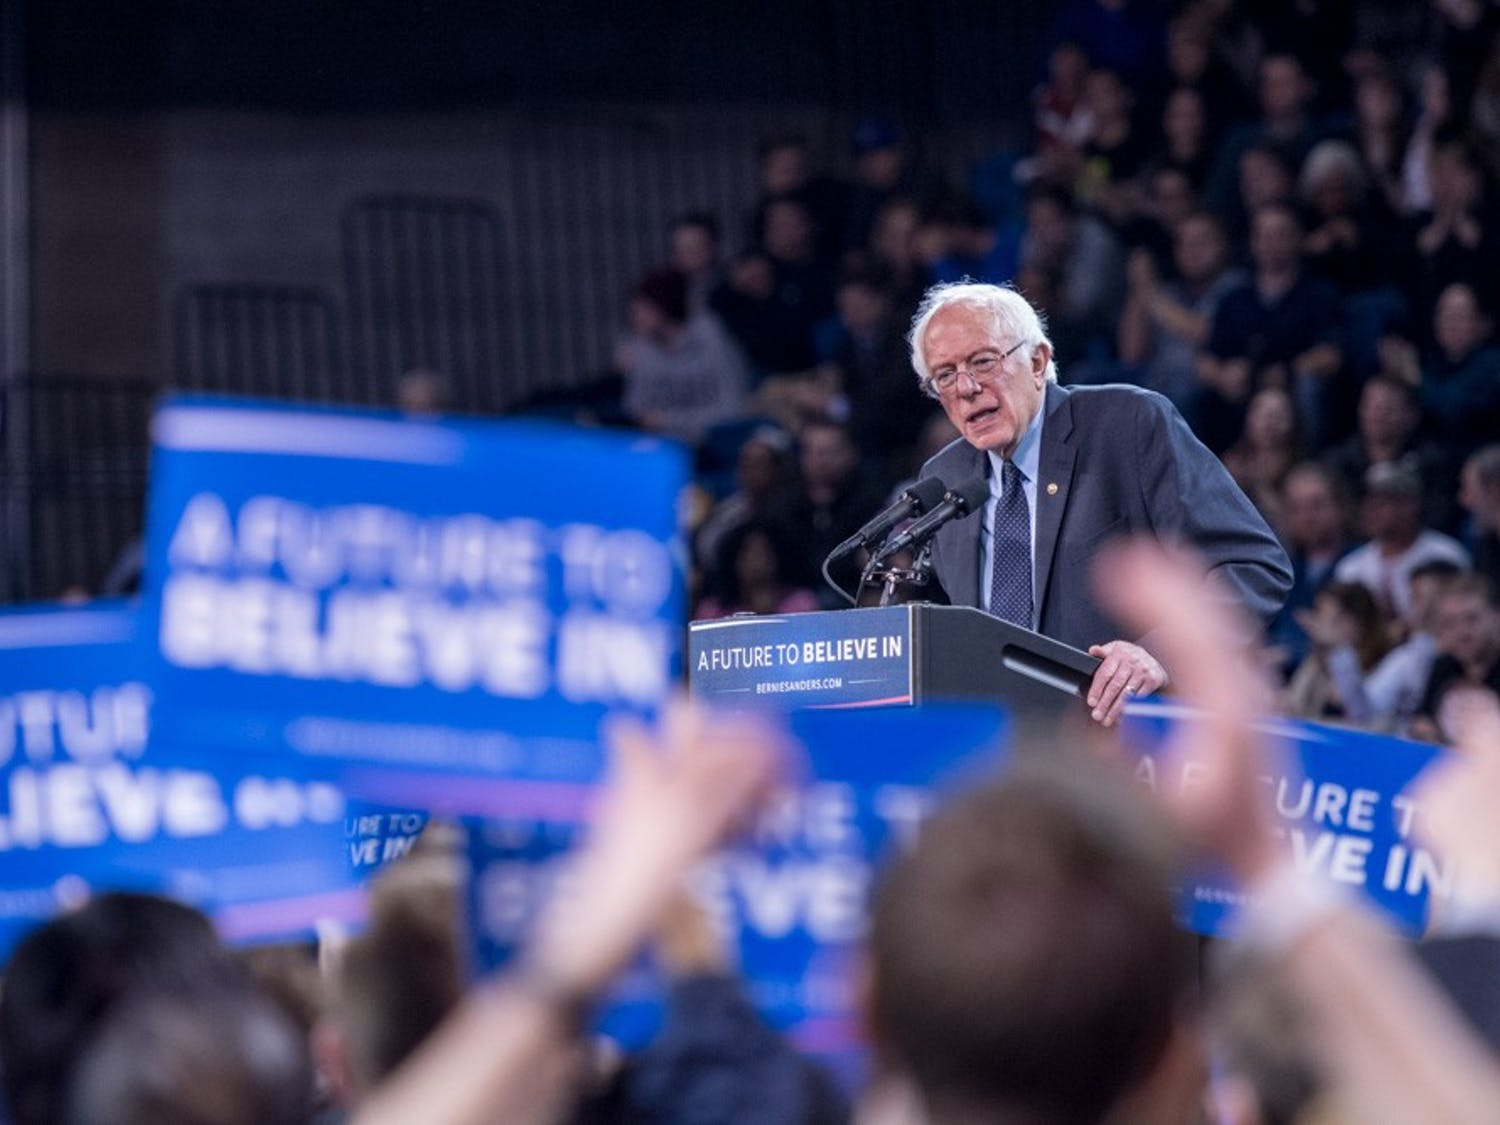 """Democratic presidential candidate Bernie Sanders spoke at Alumni Arena for his """"A Future to Believe In Rally"""" on Monday night. More than 8,000 people packed the arena to hear him speak."""